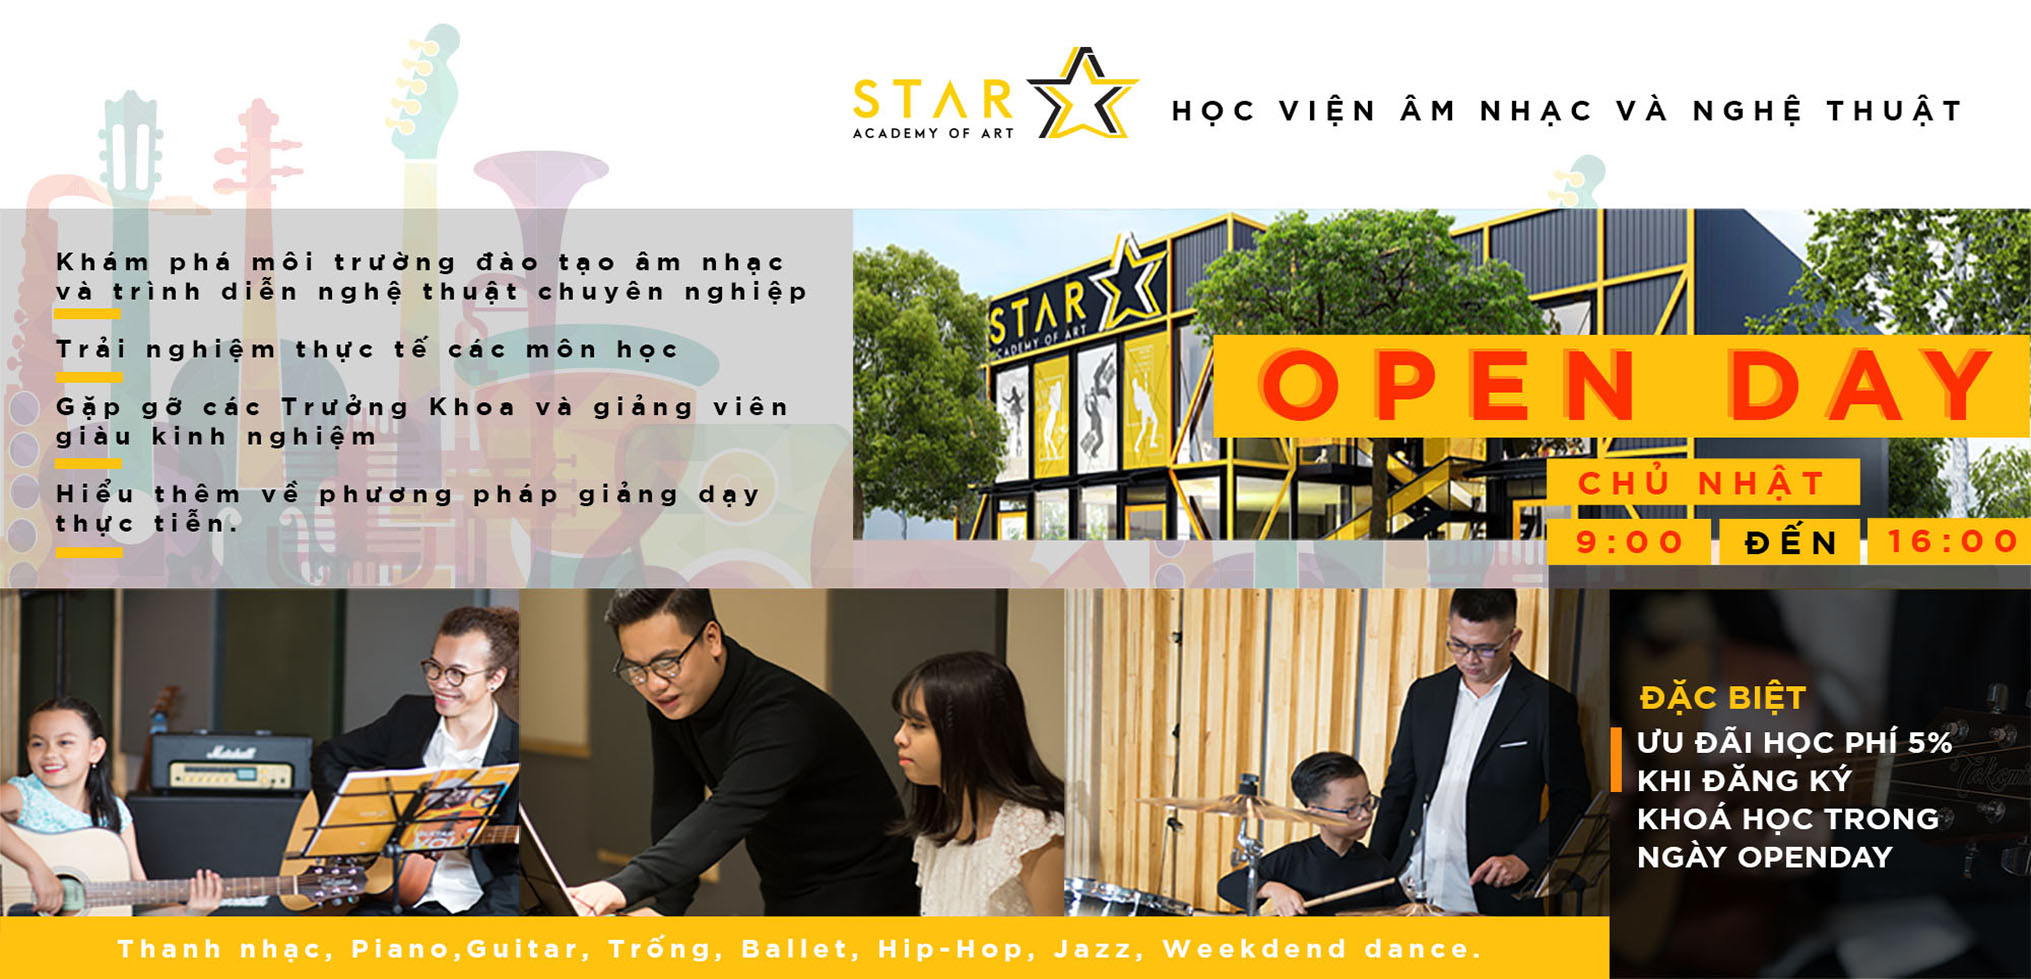 STAR ACADEMY OF ART OPEN DAY